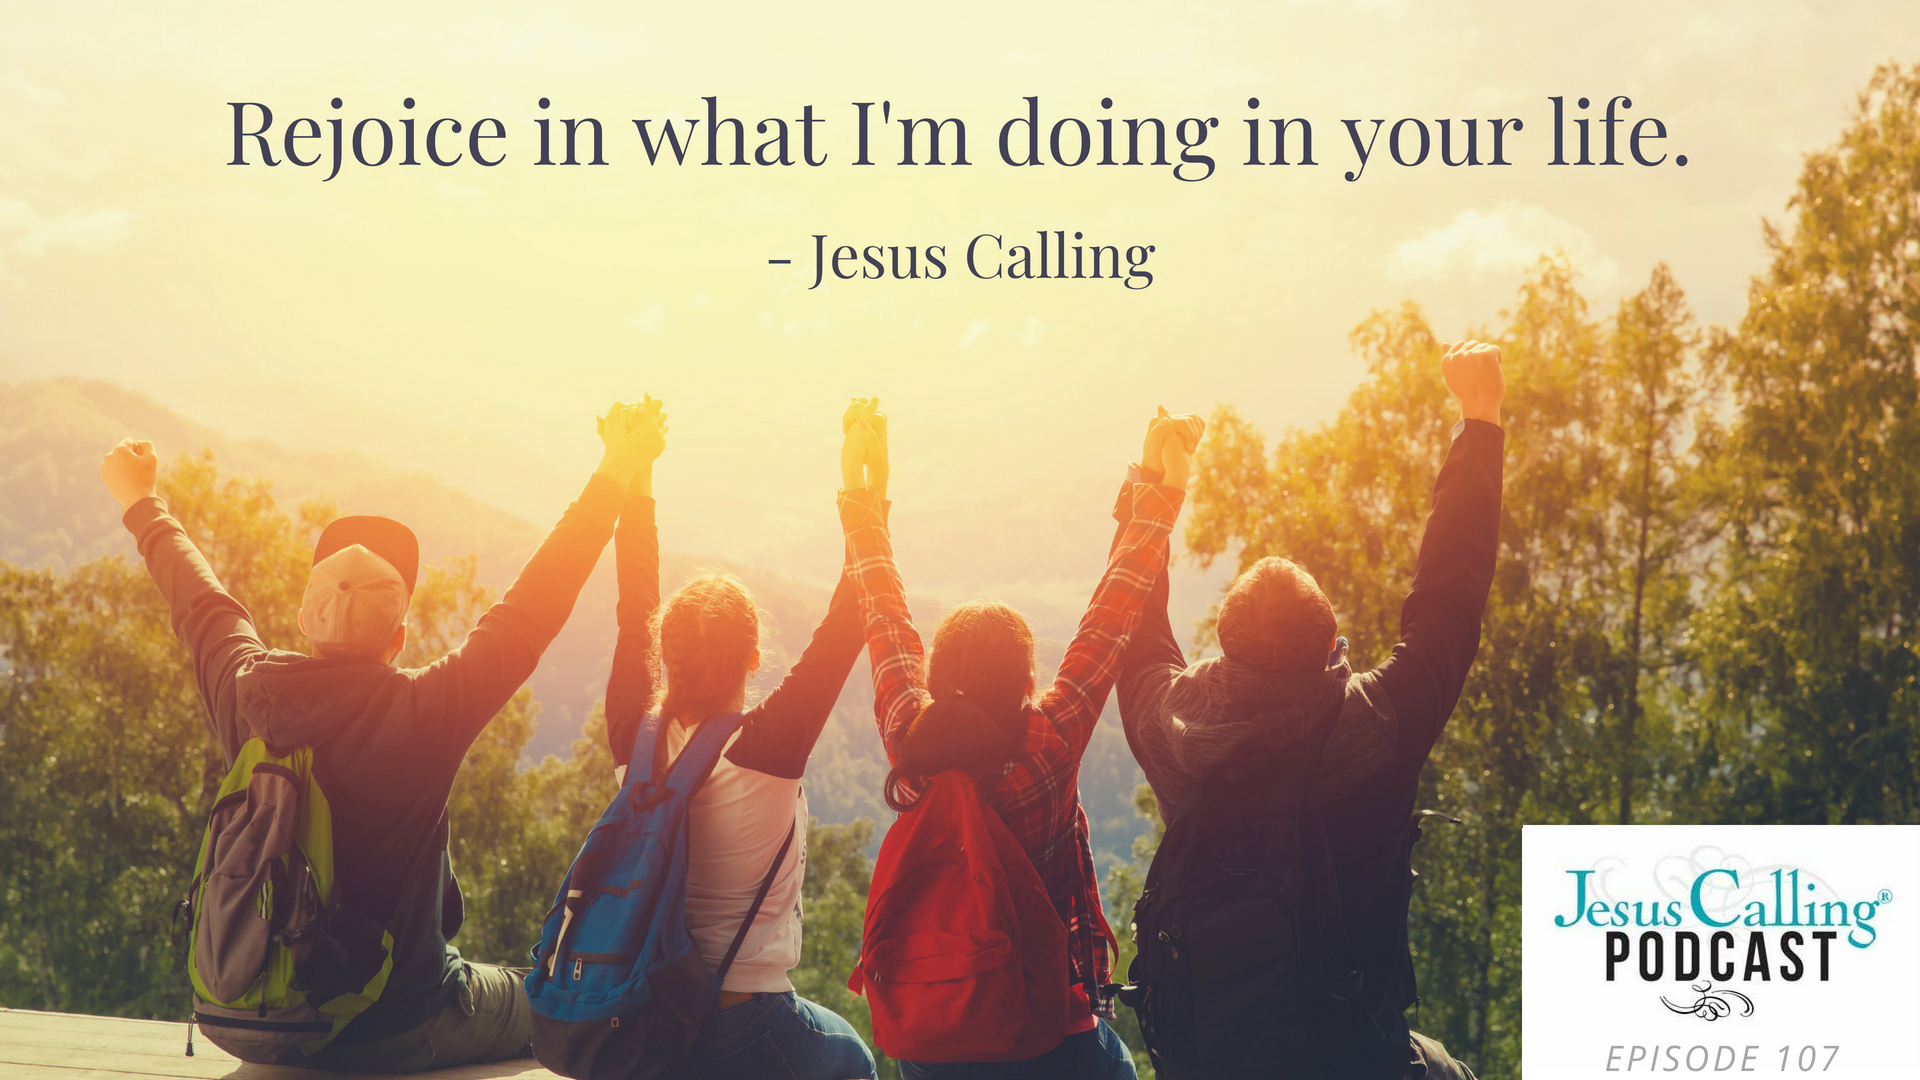 Jesus Calling episode #107 featuring Ainsley Earhardt & Andy Andrews